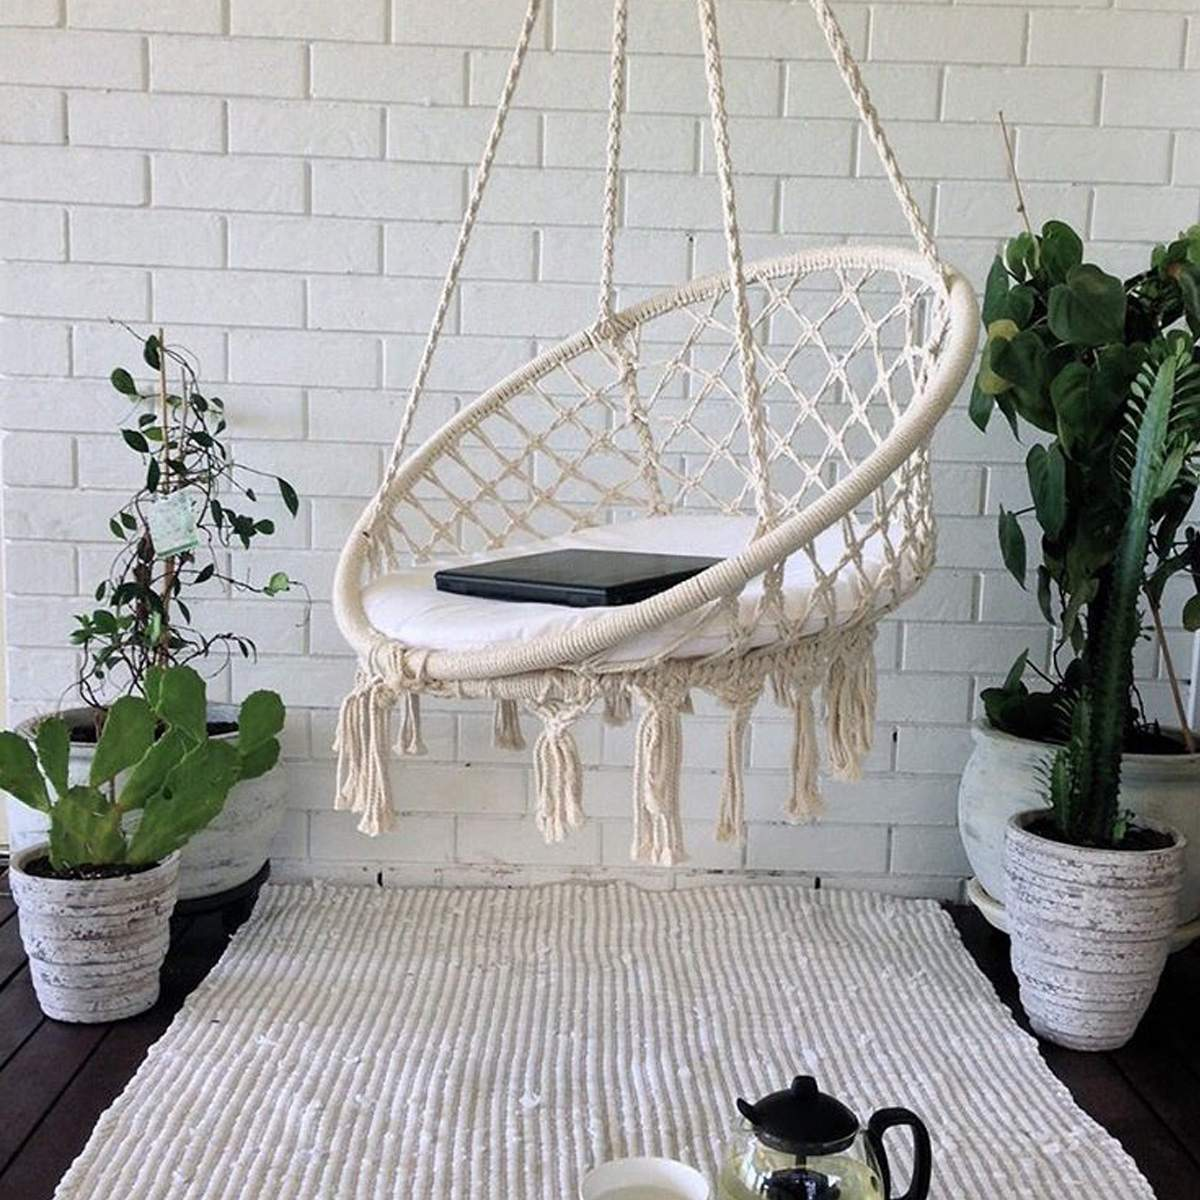 Excellent Us 75 89 31 Off Round Hammock Swing Hanging Chair Outdoor Indoor Furniture Hammock Chair For Garden Dormitory Child Adult With Tools In Hammocks Ibusinesslaw Wood Chair Design Ideas Ibusinesslaworg